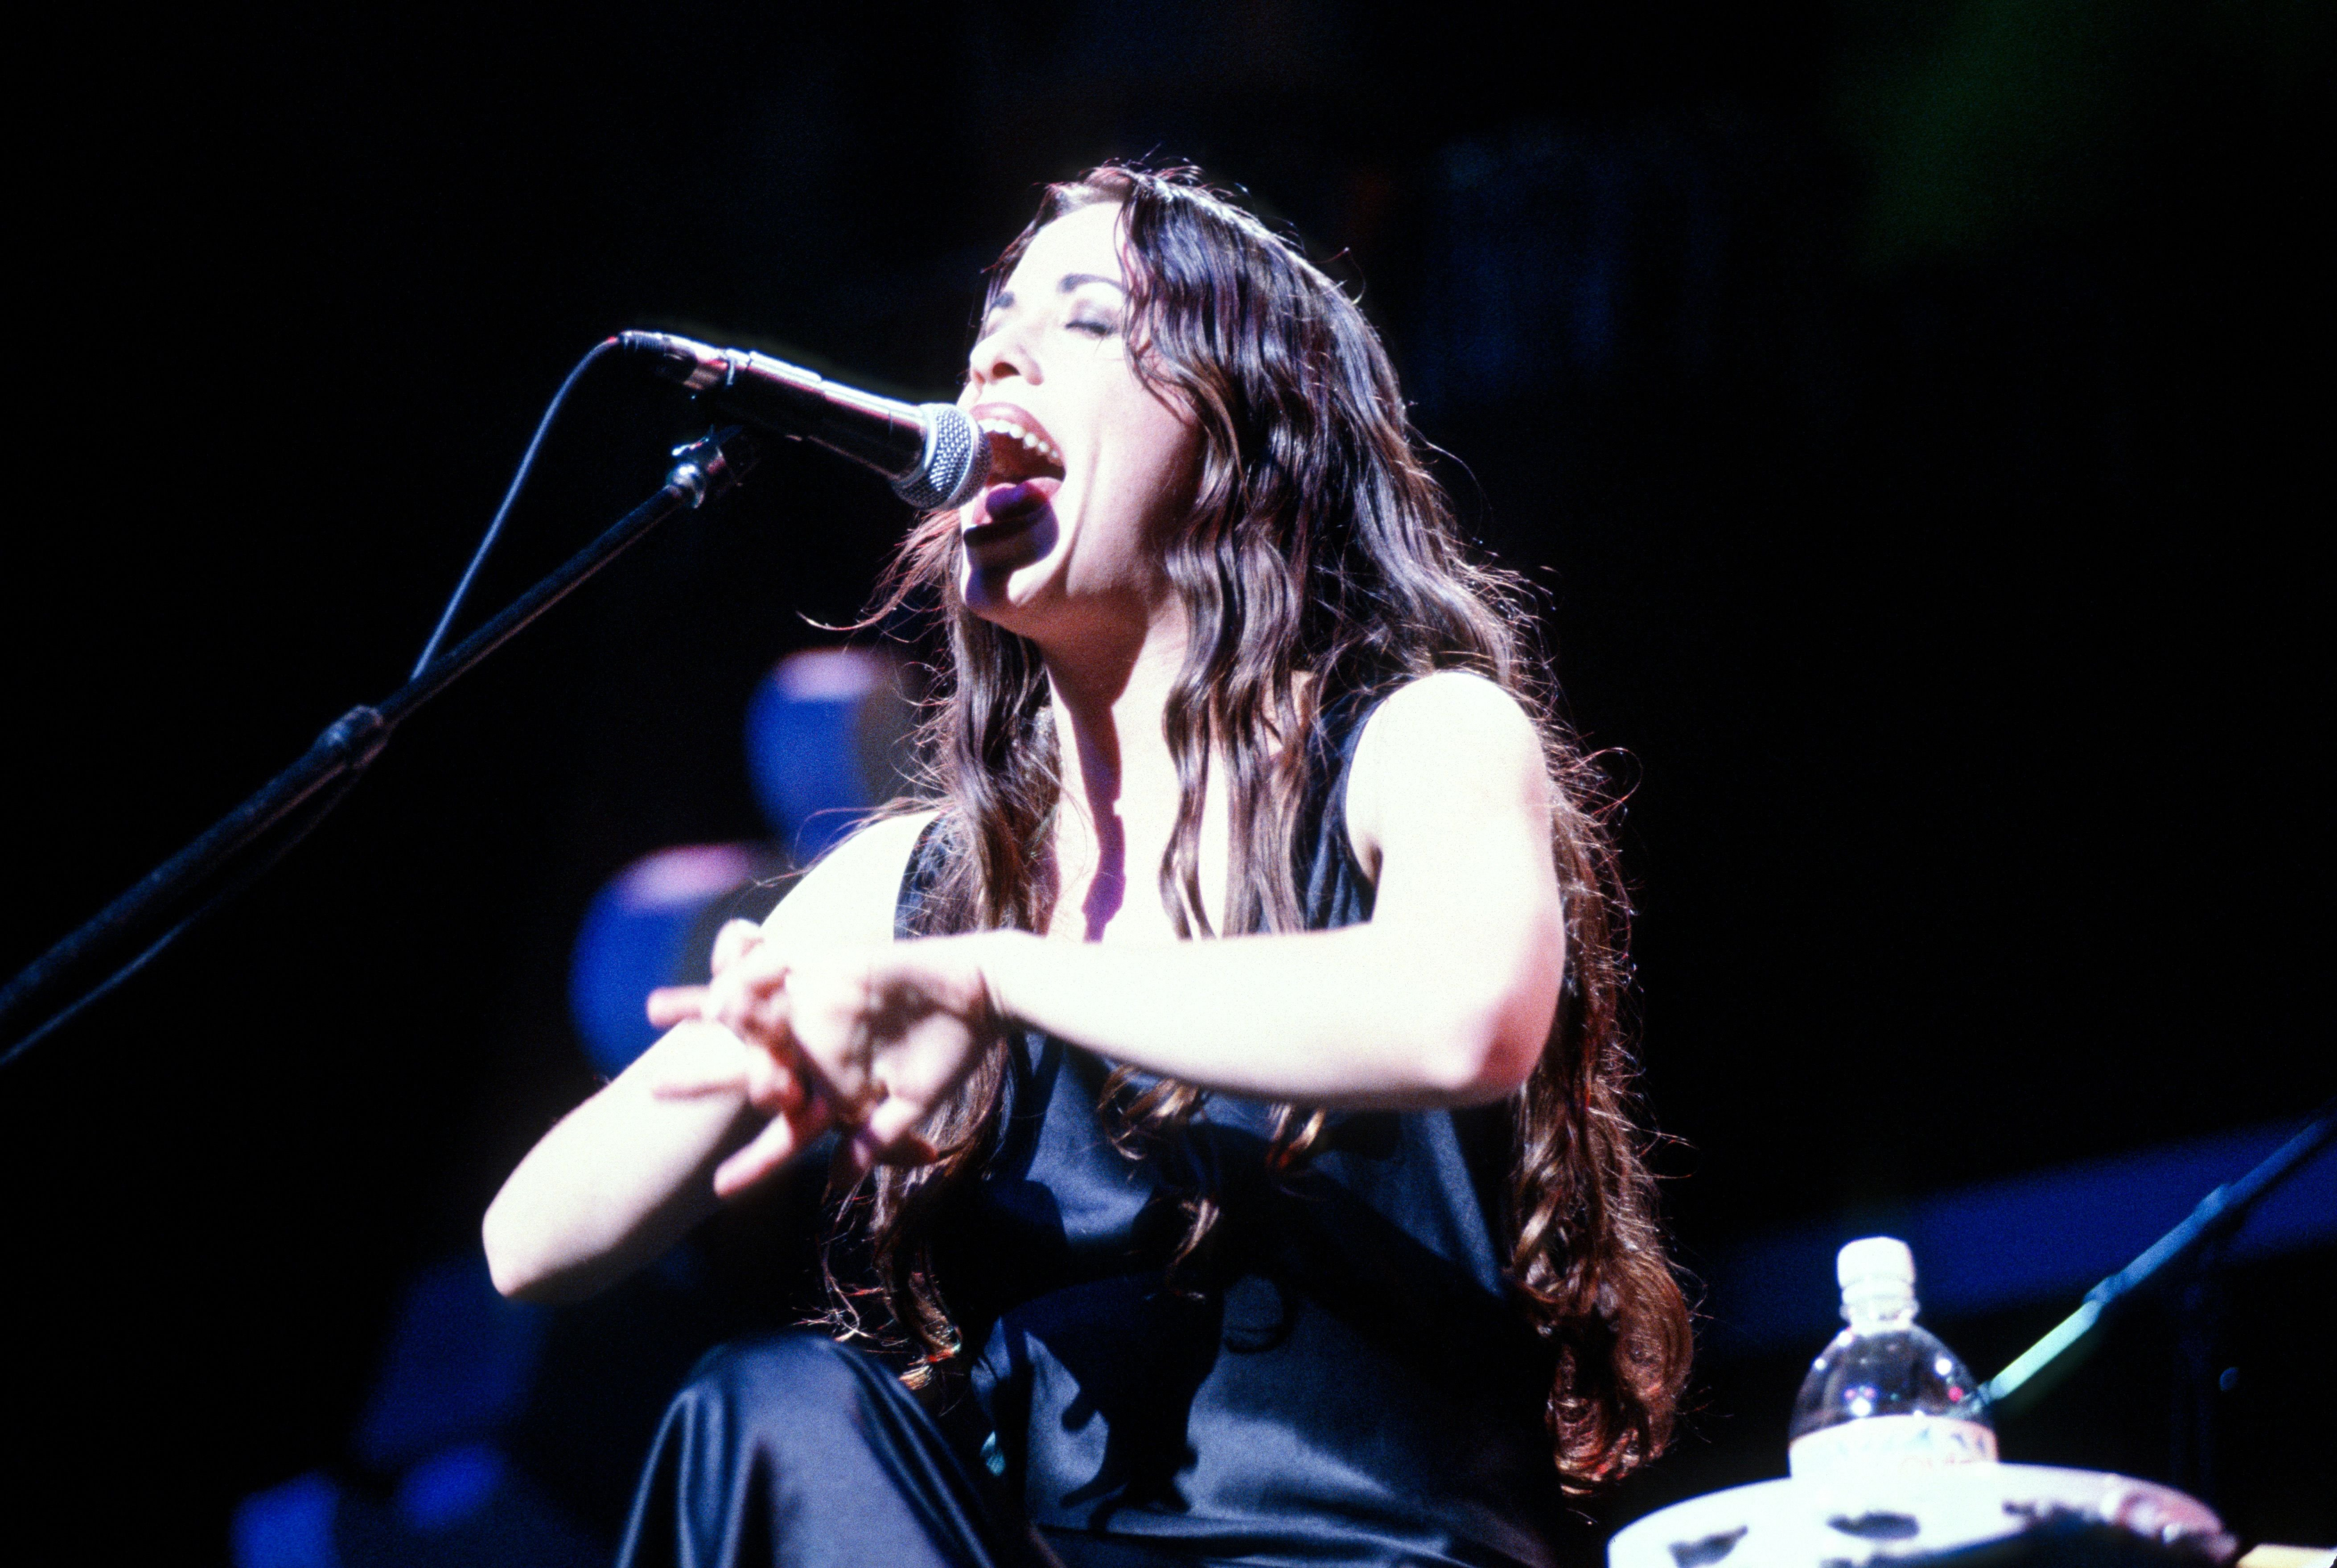 Singer/ songwriter Alanis Morissette onstage circa 1995 | Source: Getty Images